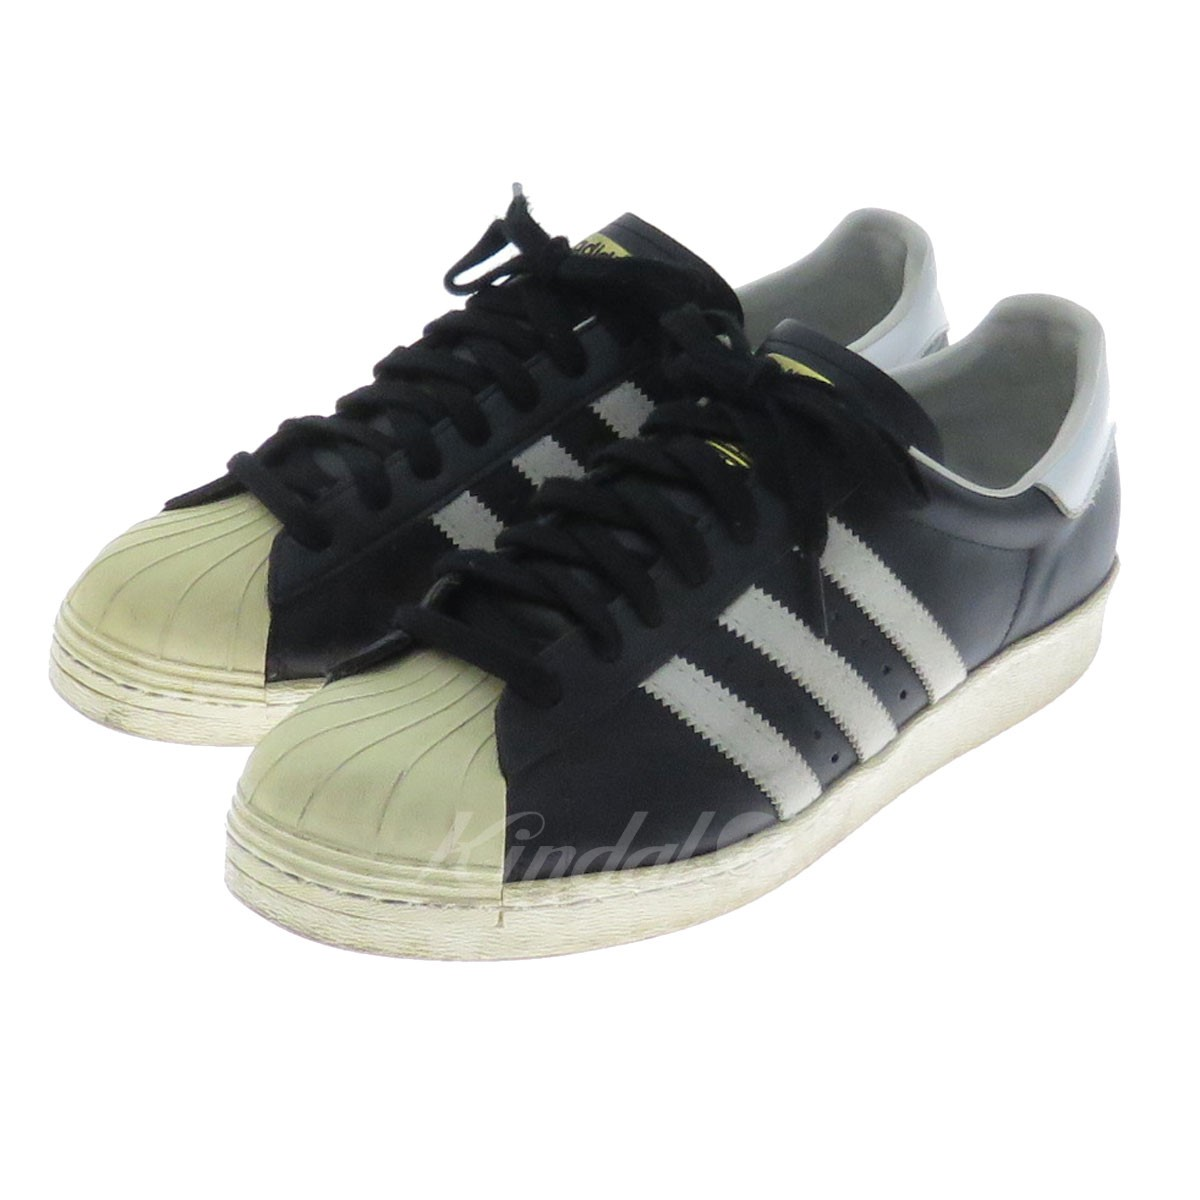 huge selection of 0013c e7679 adidas SUPERSTAR 80S superstar sneakers G61069 black size: 28. 0cm (Adidas)